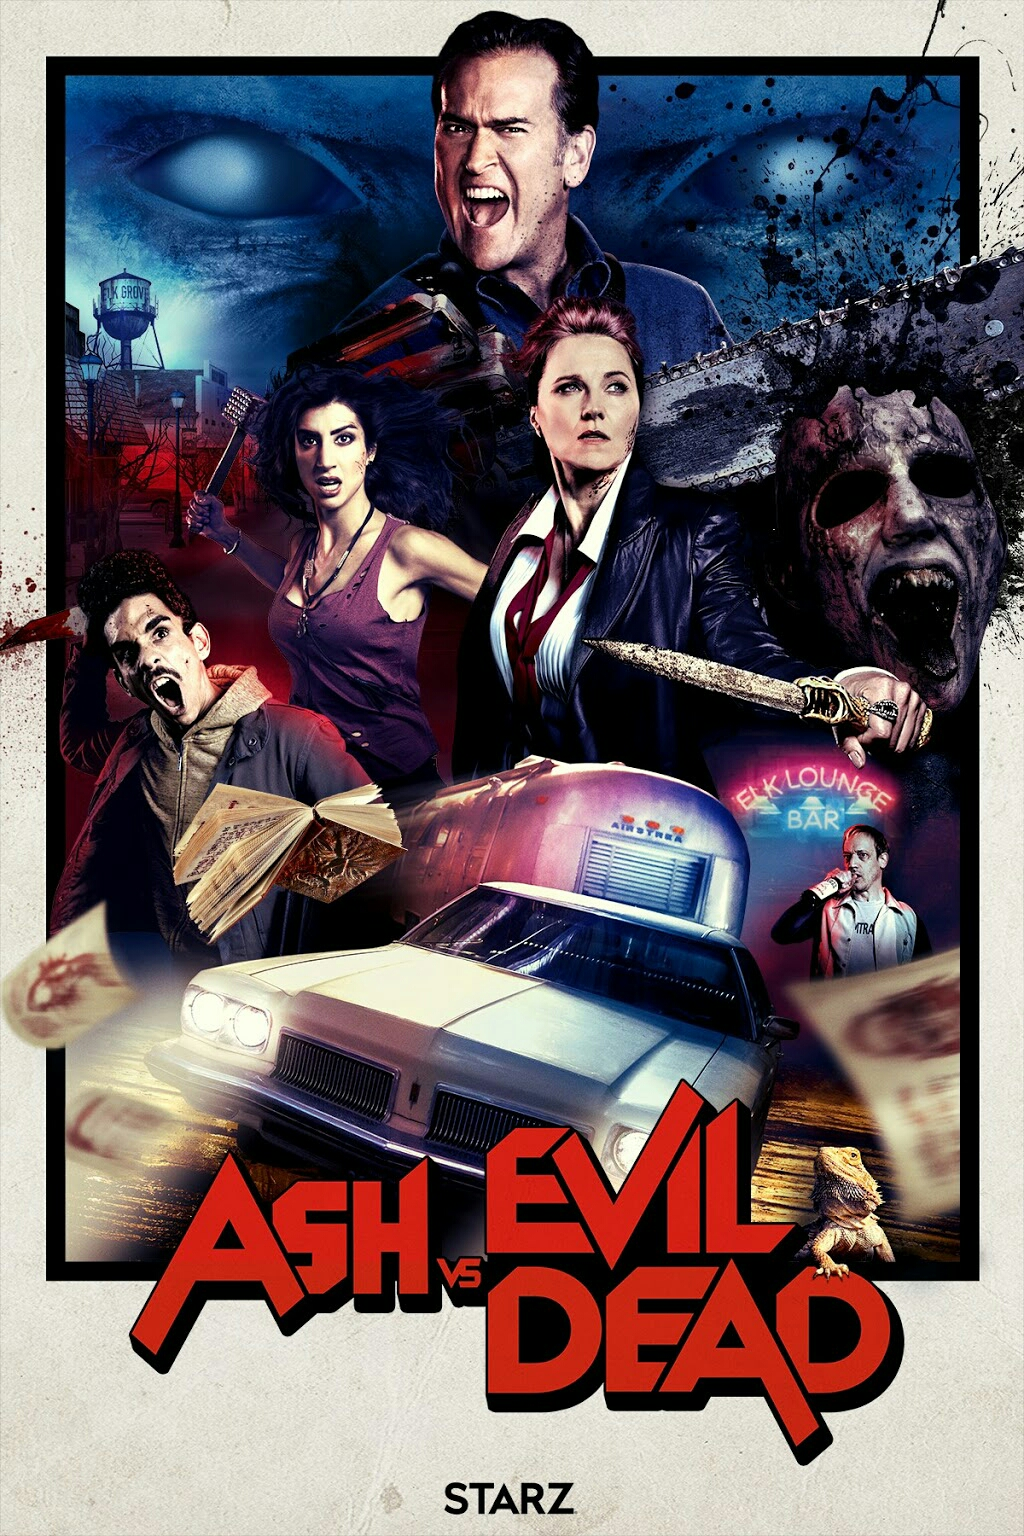 Appropriately amazing new poster to celebrate the upcoming season of Ash's continued battle vs evil (dead).